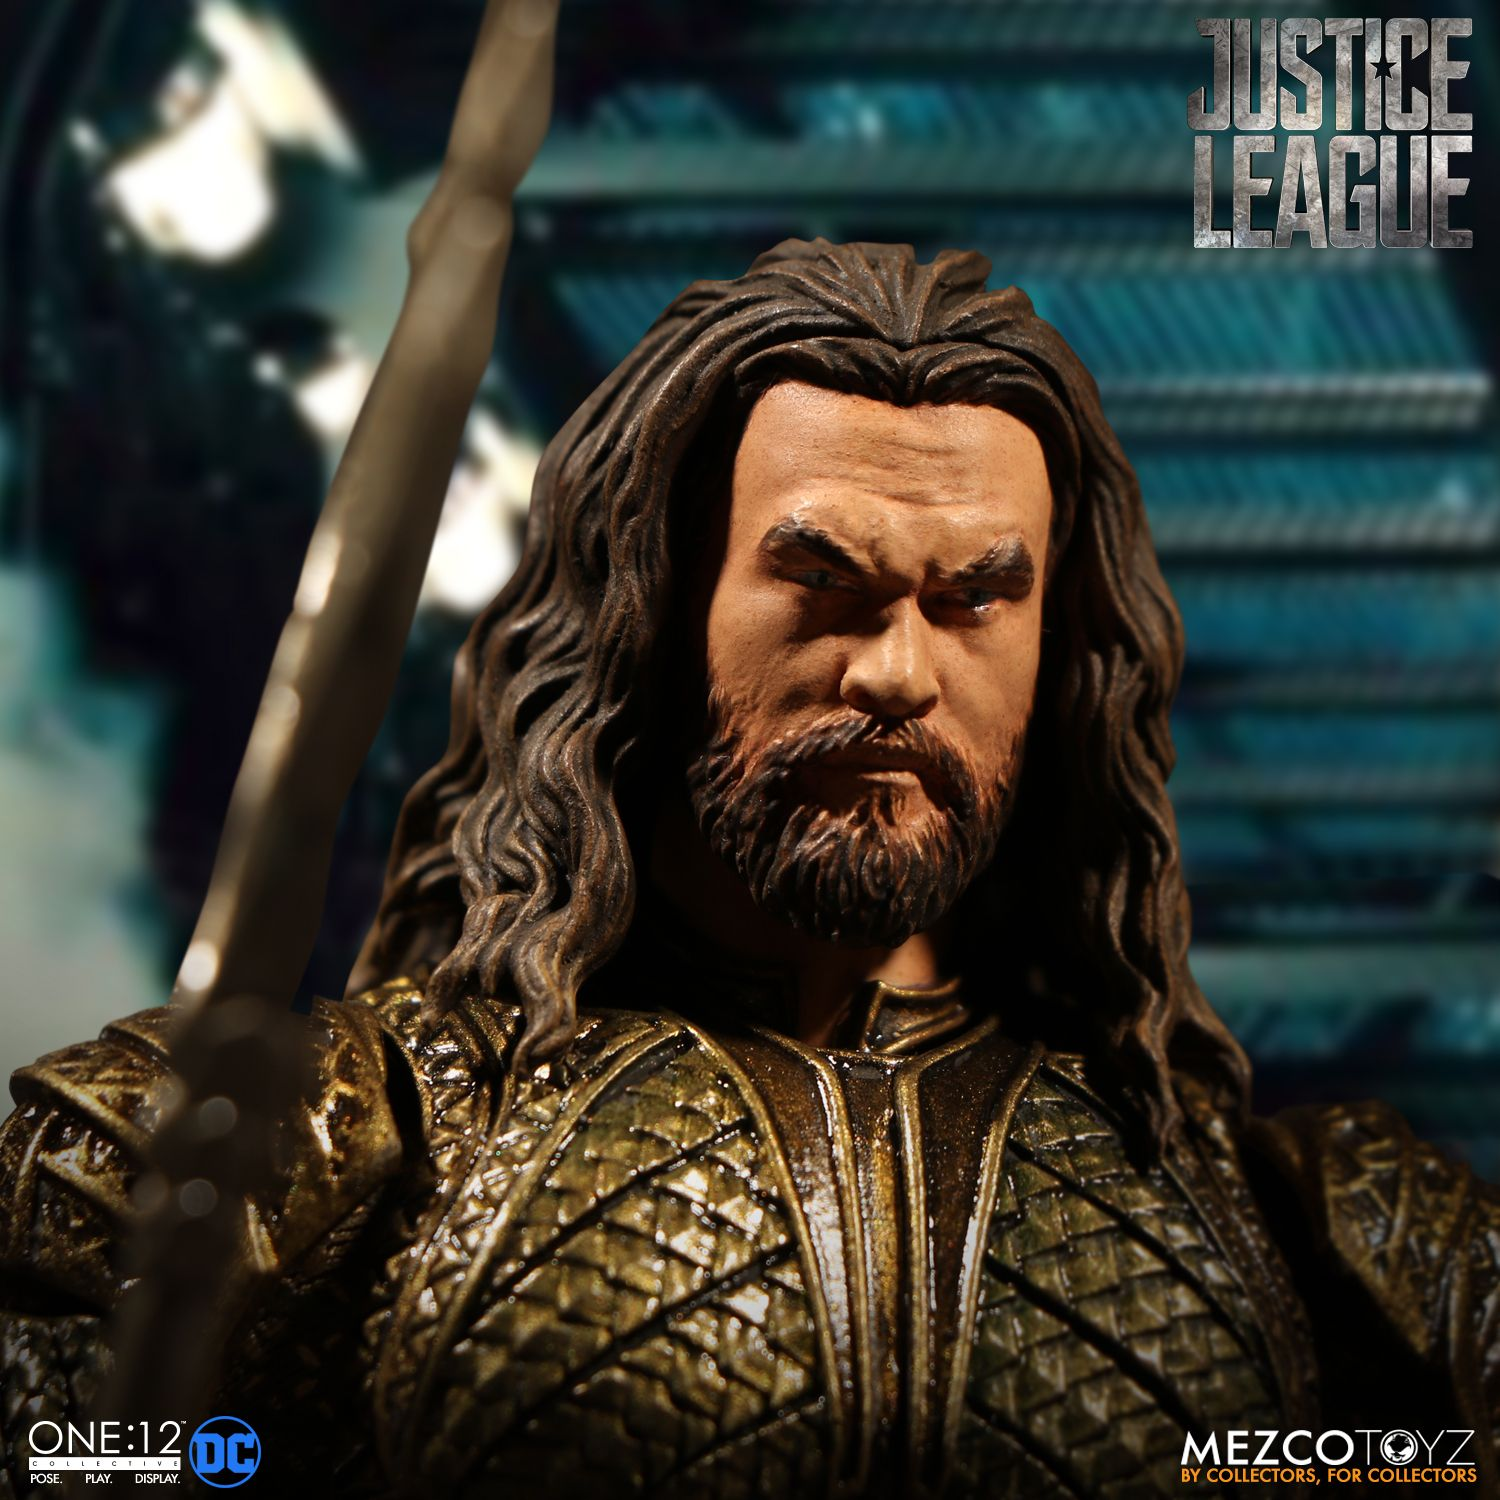 Mezco-JL-One12-Aquaman-Figure-007